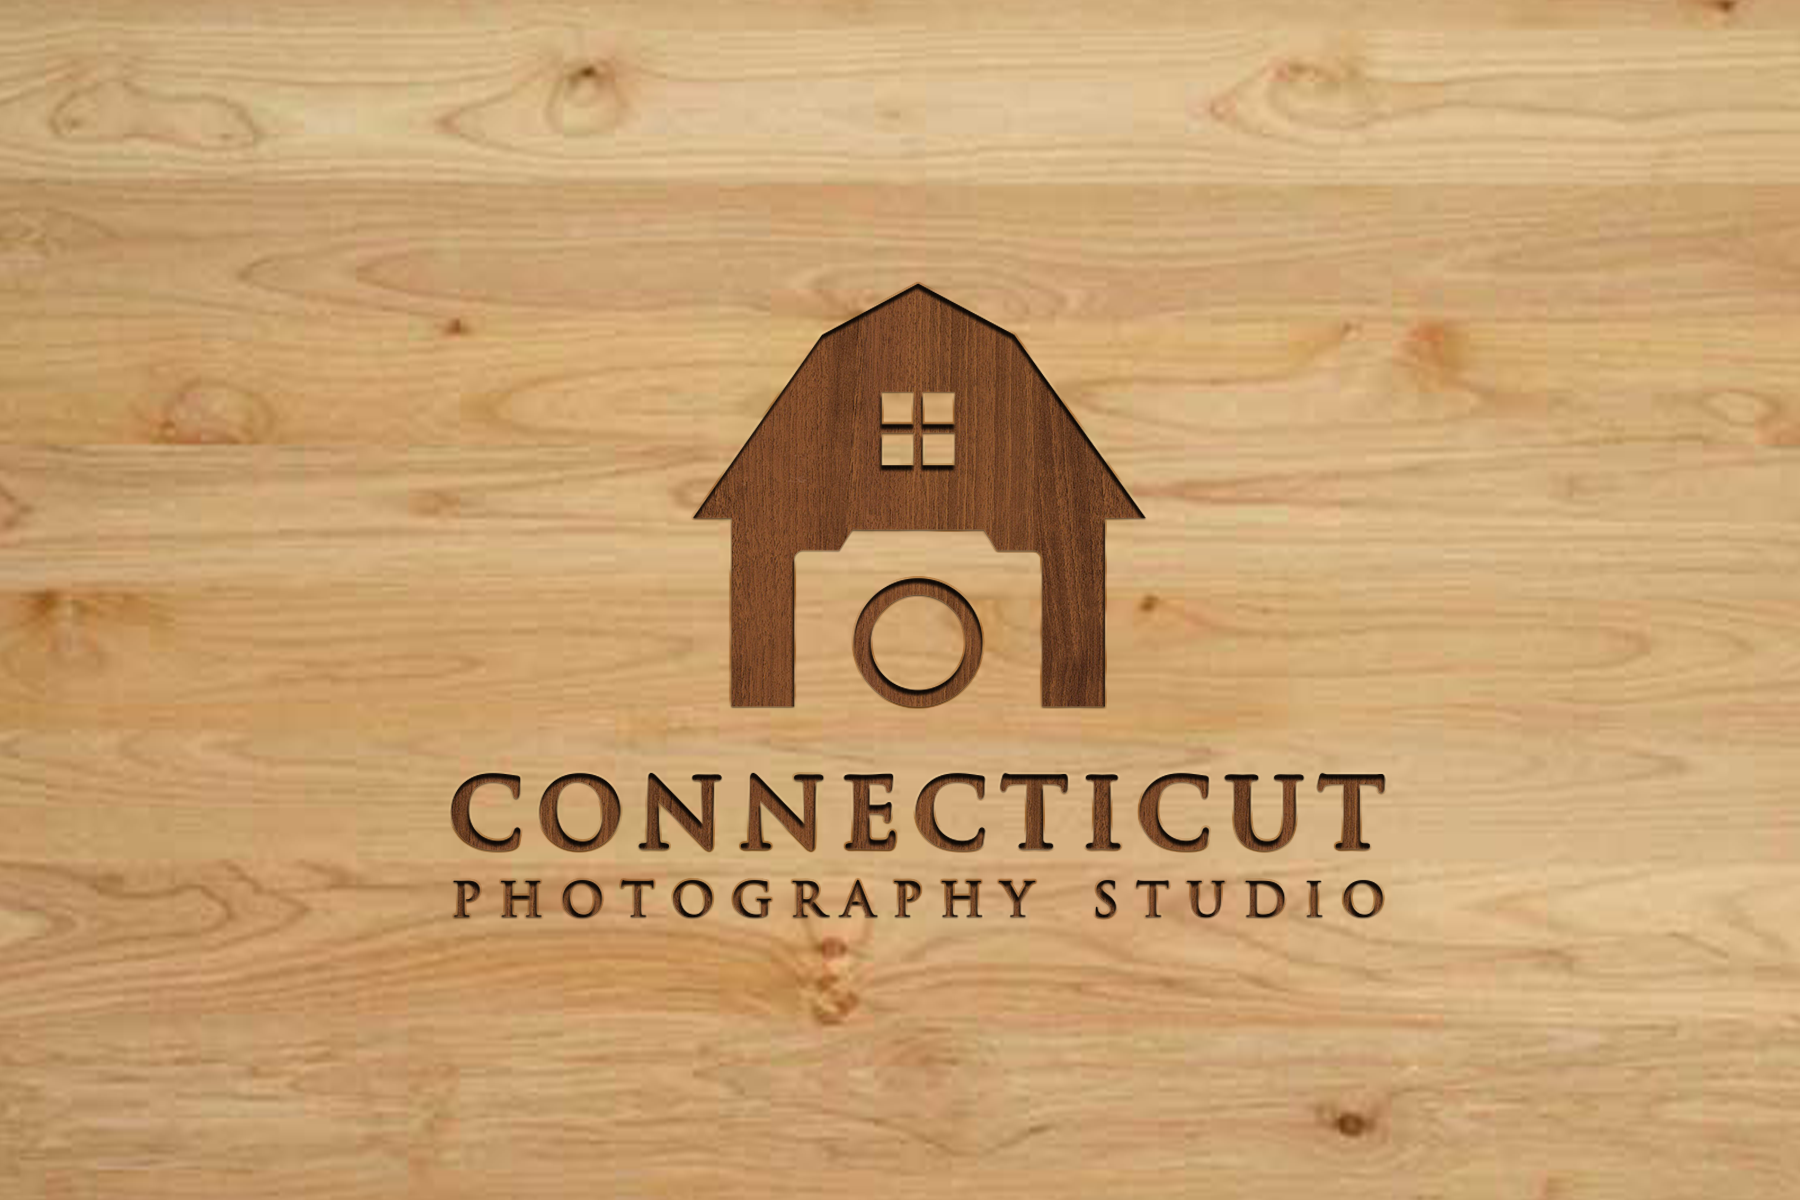 Connecticut Photography Studio (CTPS)